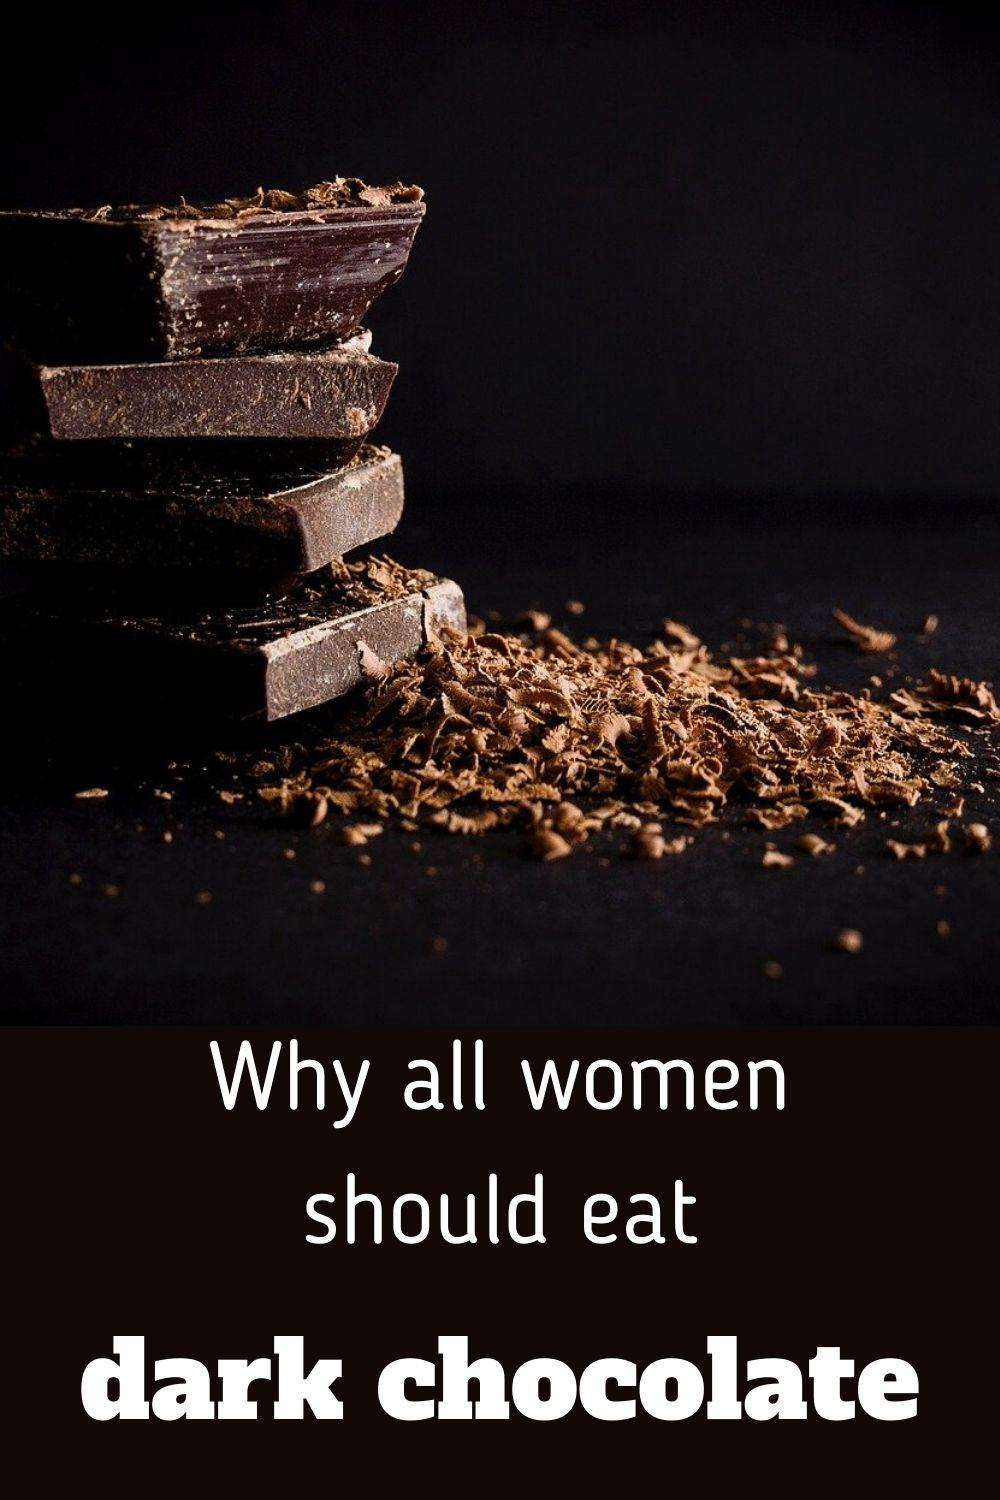 why all women should eat dark chocolate